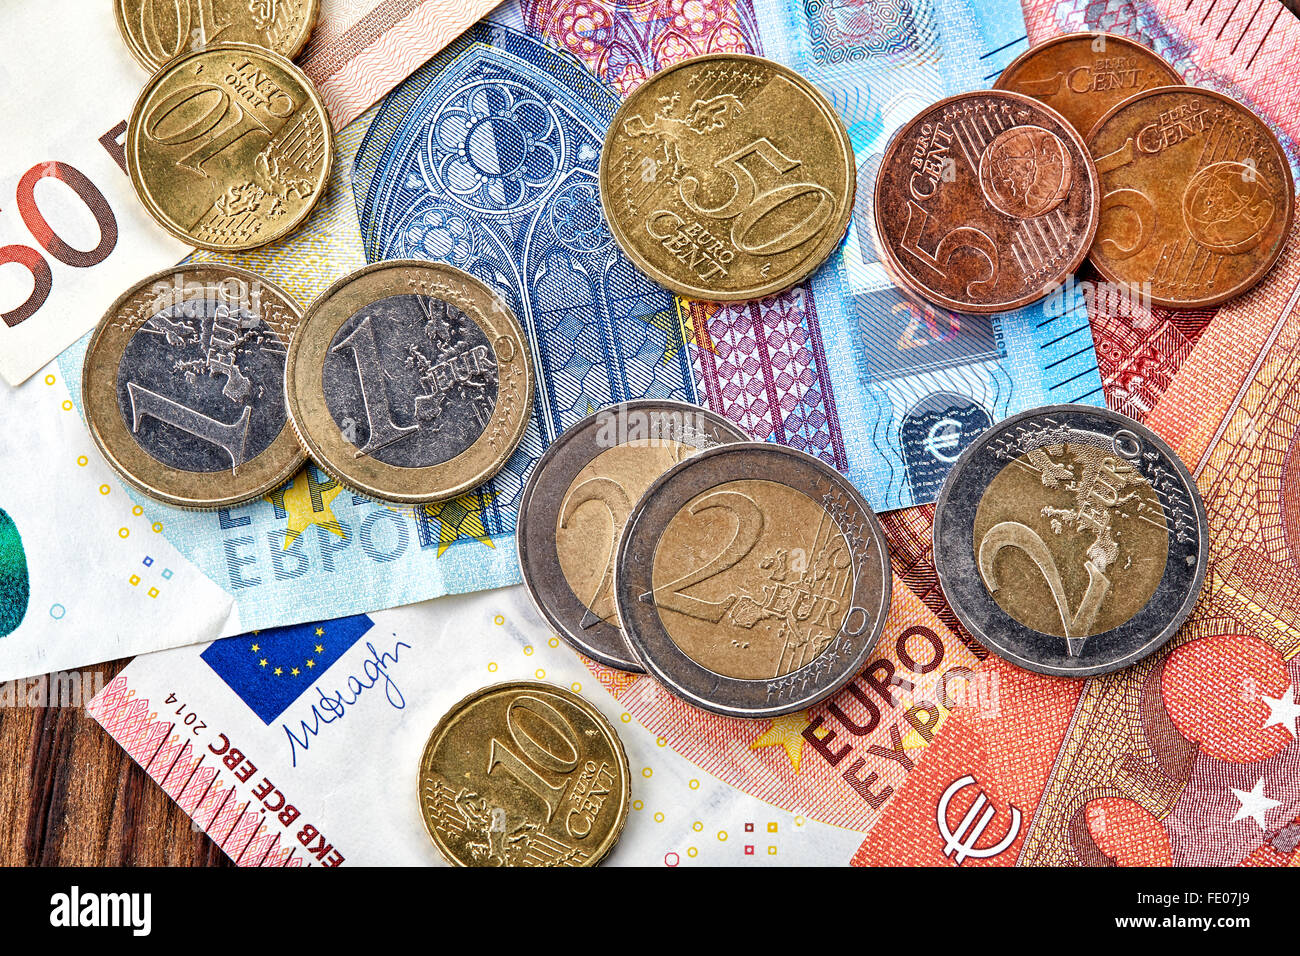 Money Euro banknotes and coins on wooden table, top view - Stock Image